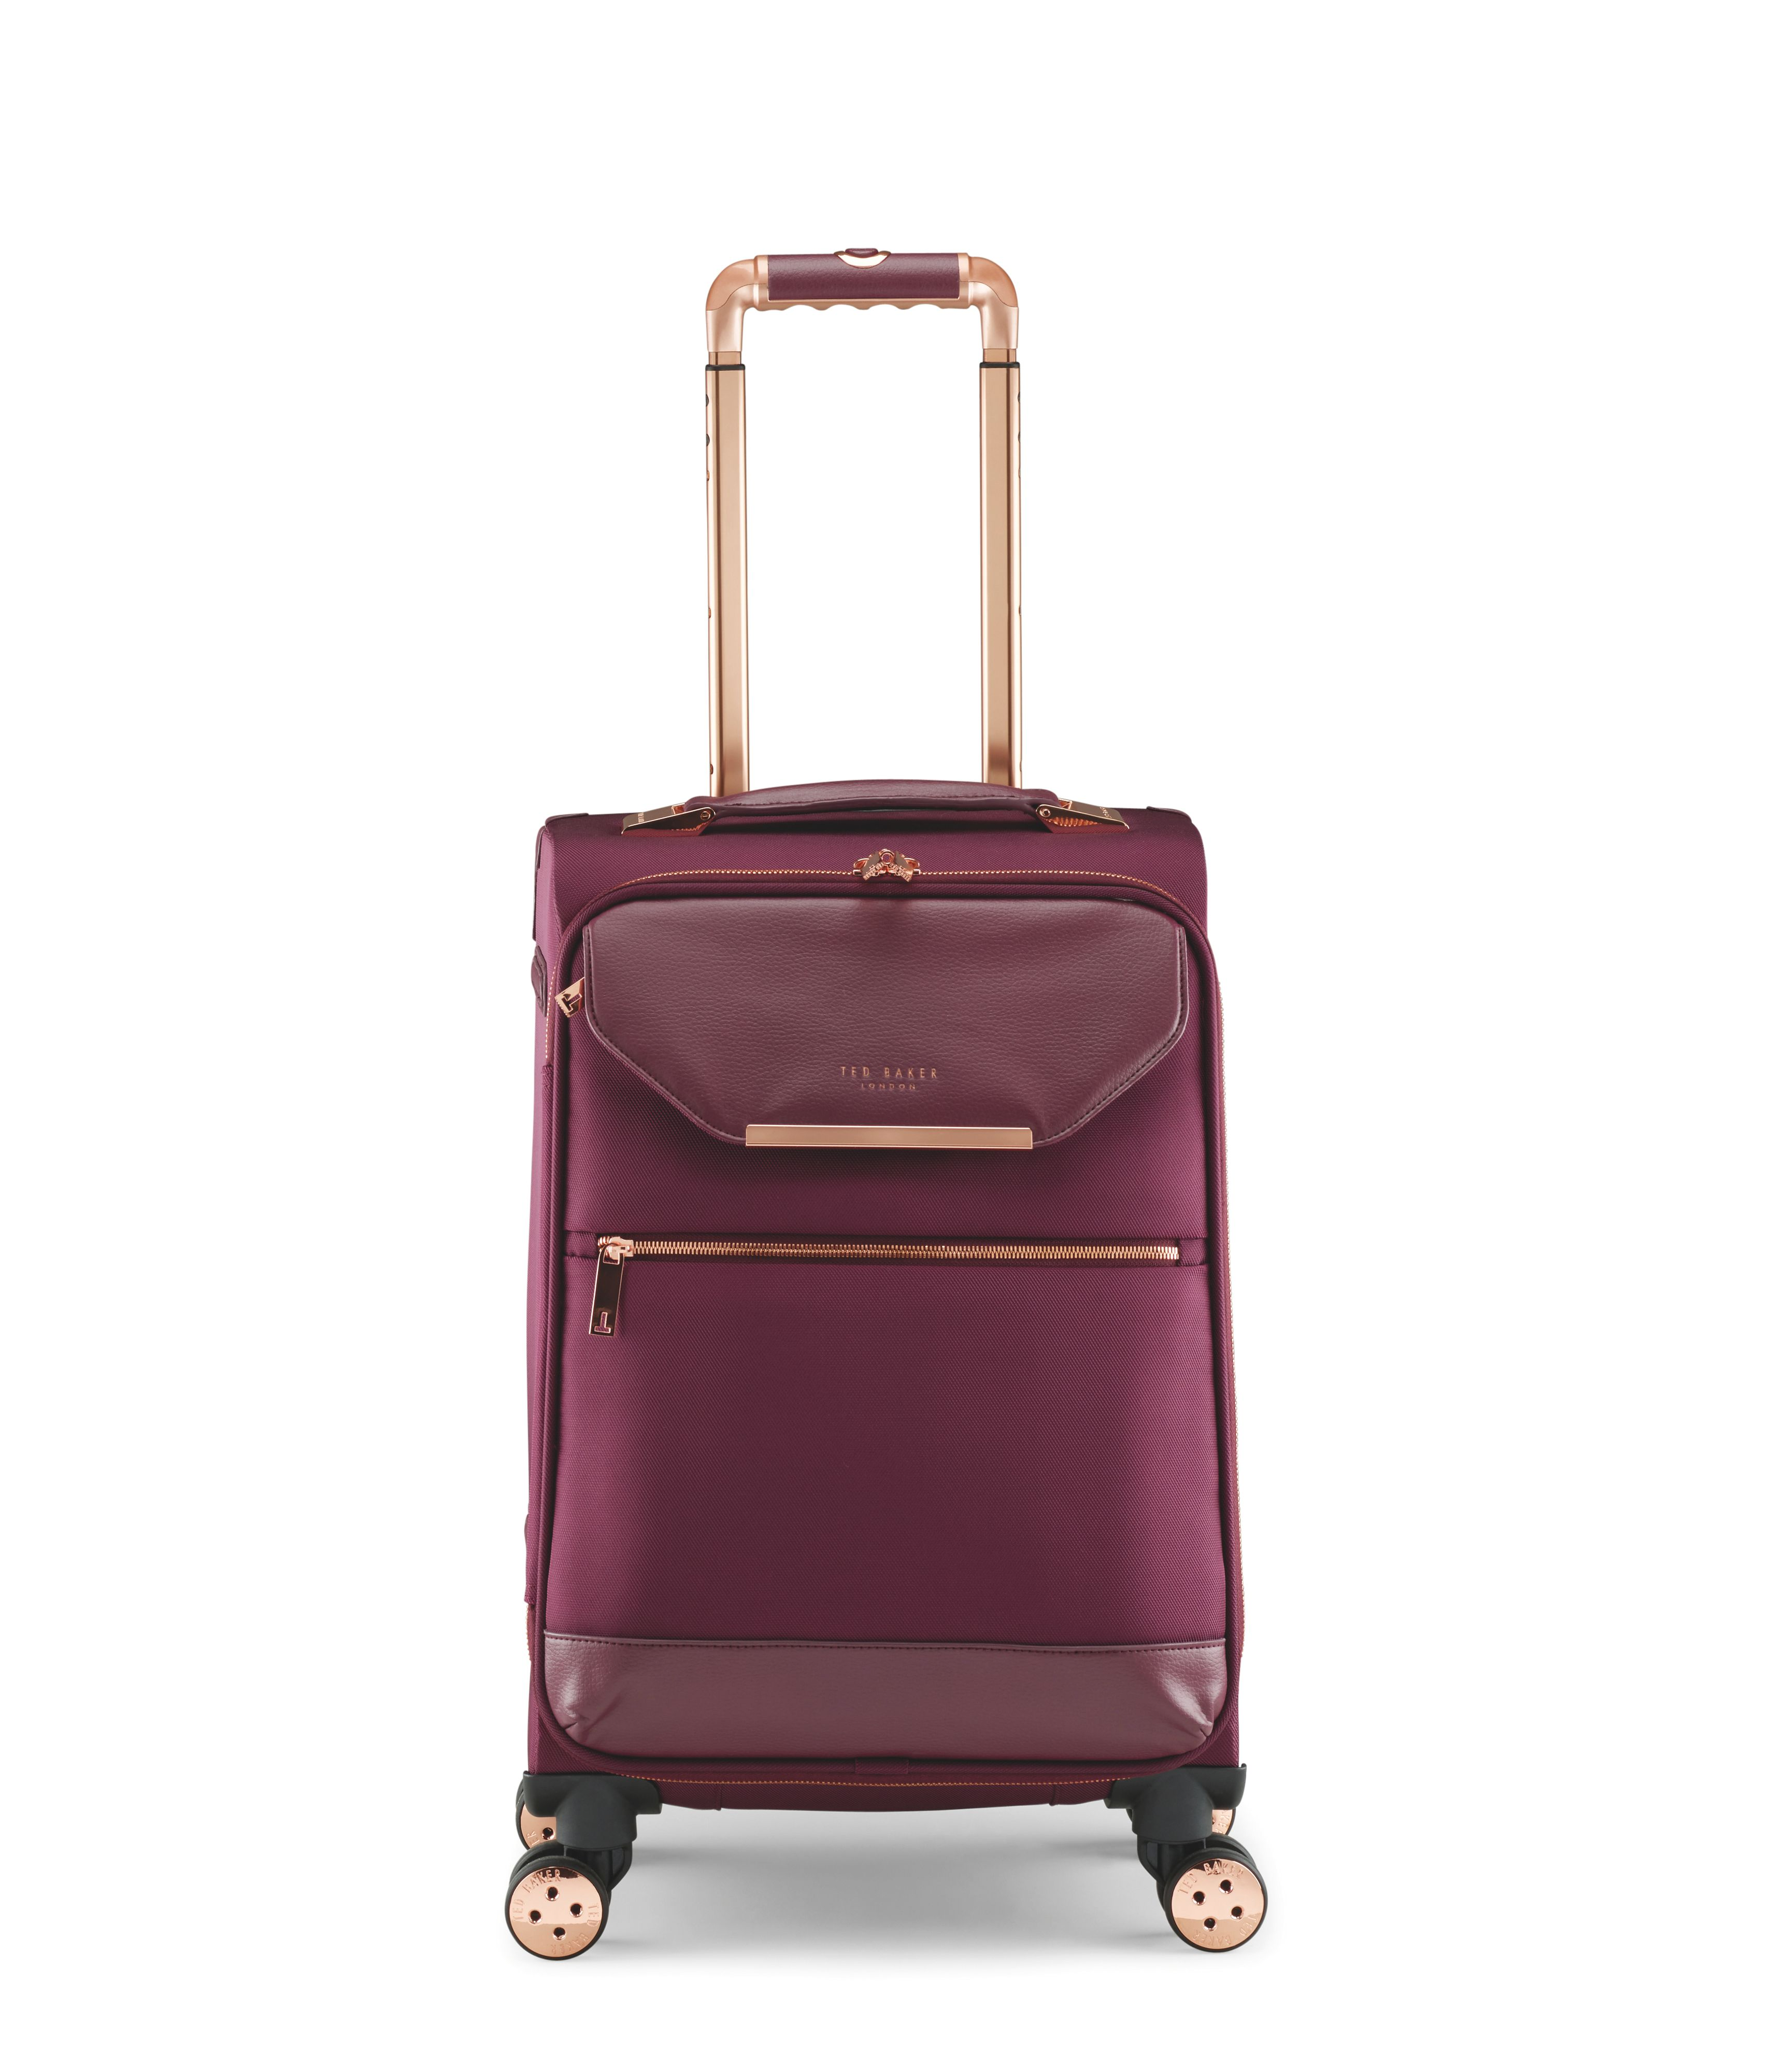 Ted Baker ALBANY BURGUNDY 4 WHEEL SOFT CABIN SUITC, Red